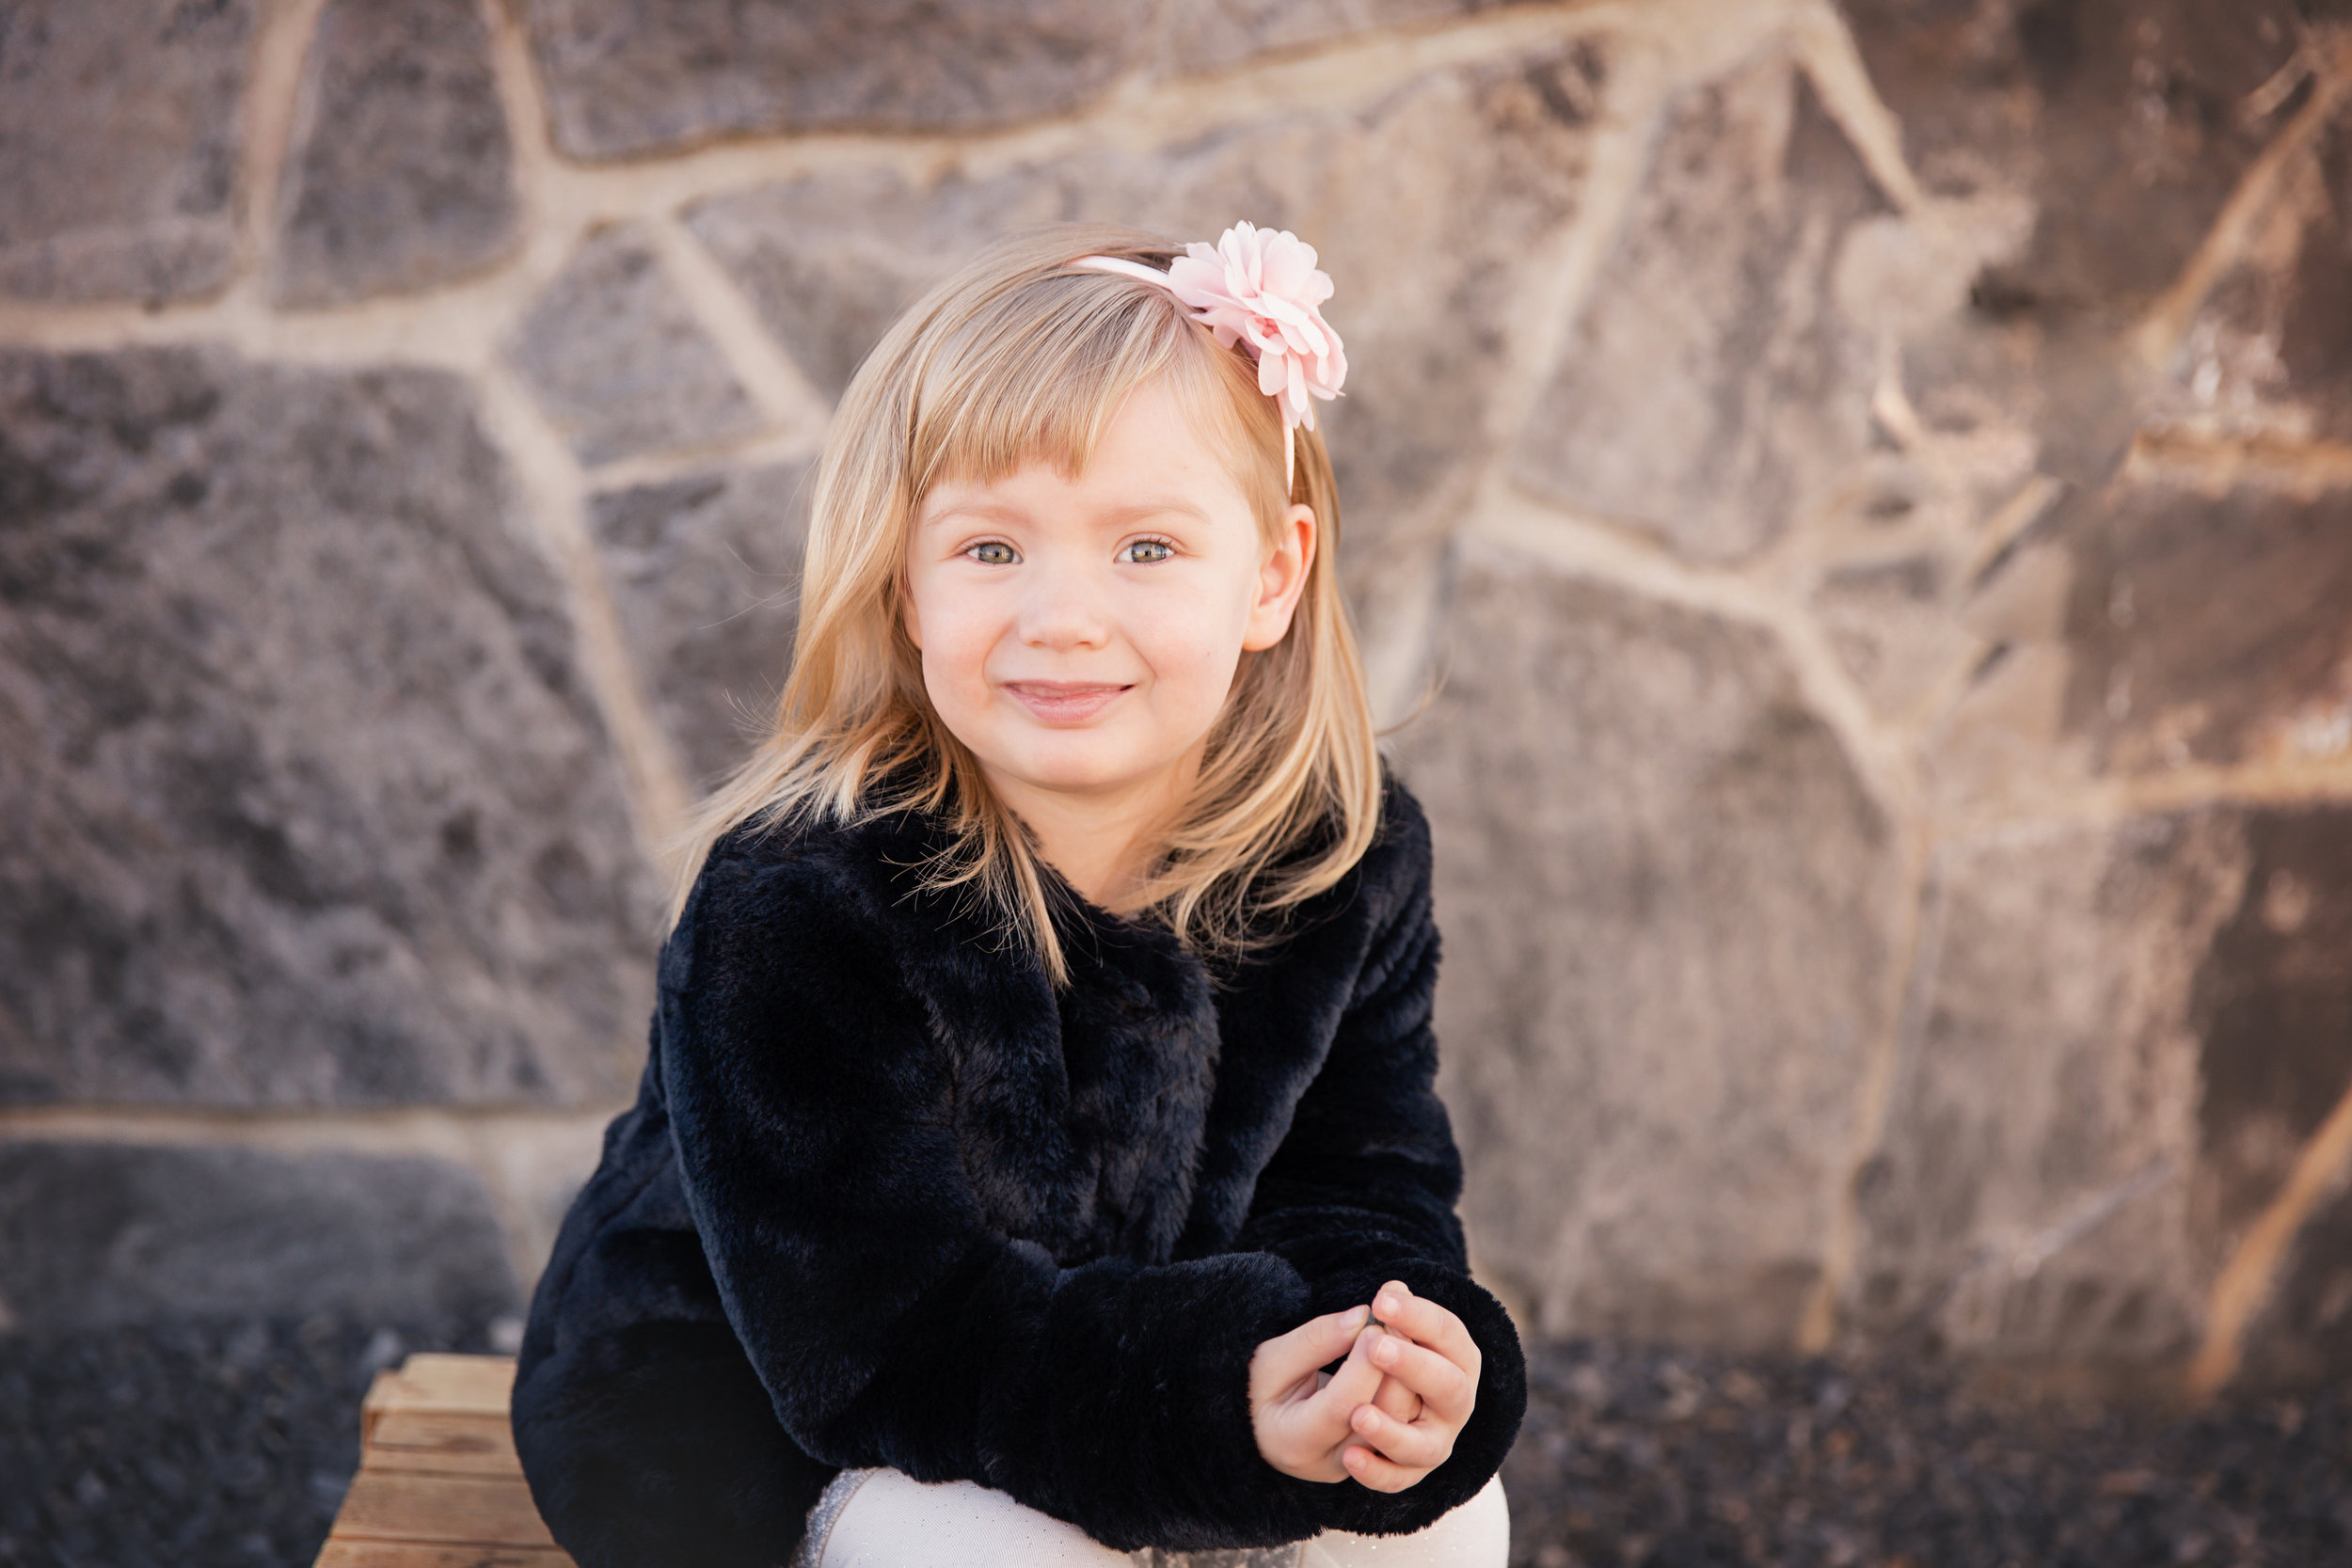 Little girl is smiling and looking into the camera. Calgary photographer. Milashka Photography